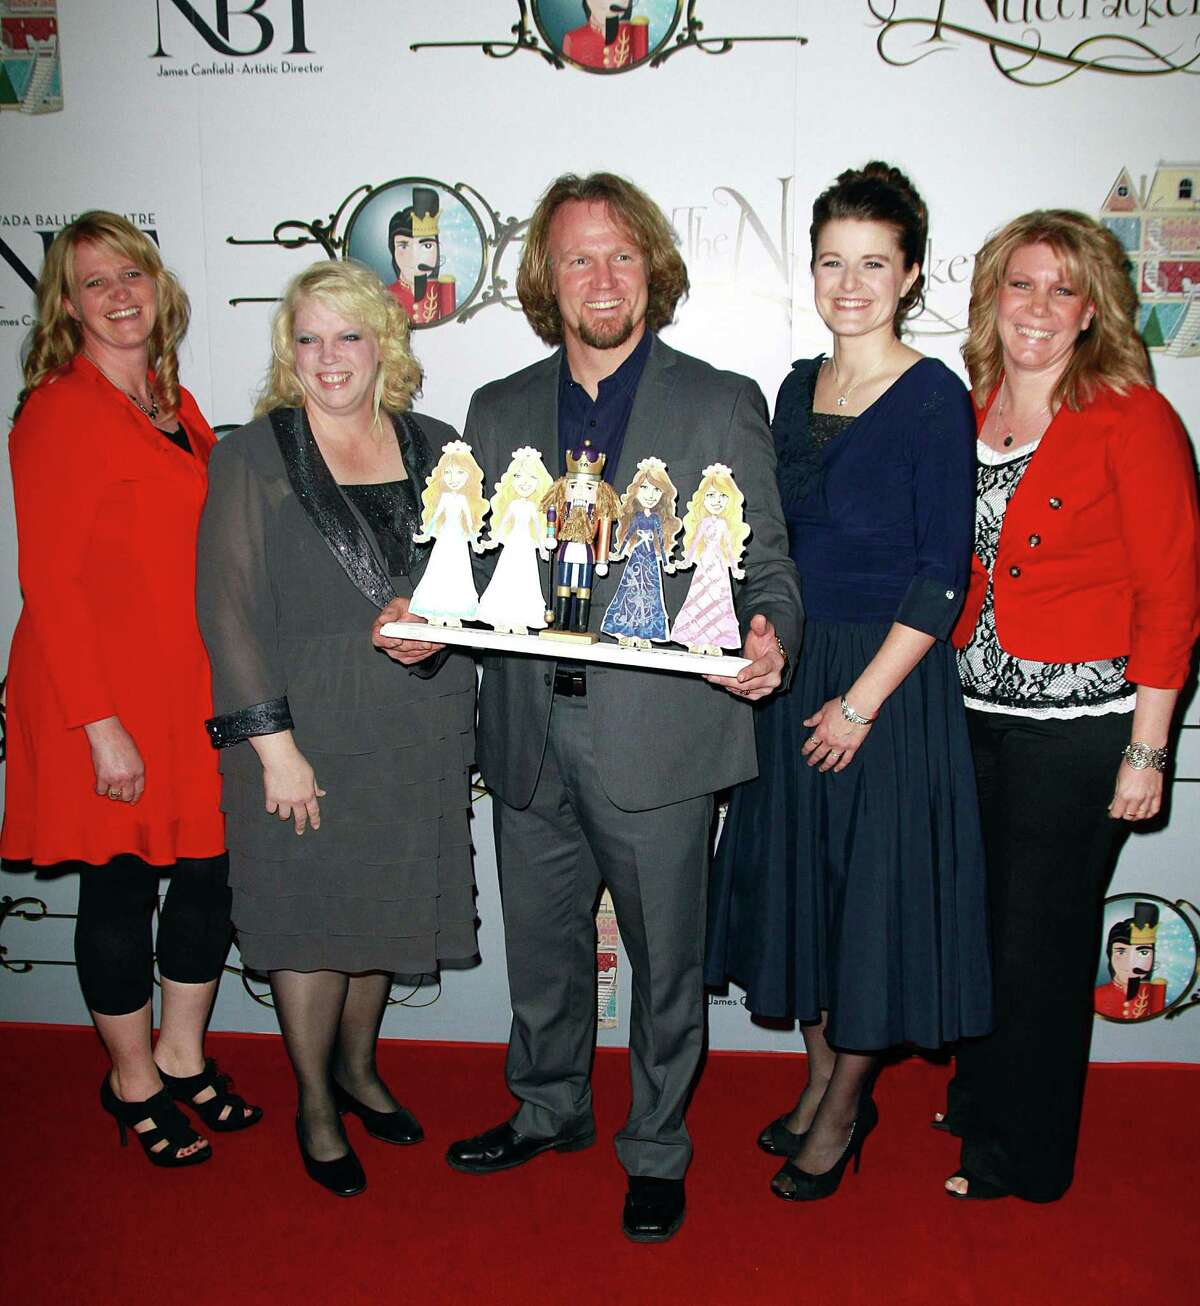 Polygamist Kody Brown, center, poses with his four wives (from left) Christine Brown, Janelle Brown, Robyn Brown and Meri Brown at the Nevada Ballet Theatre's production of